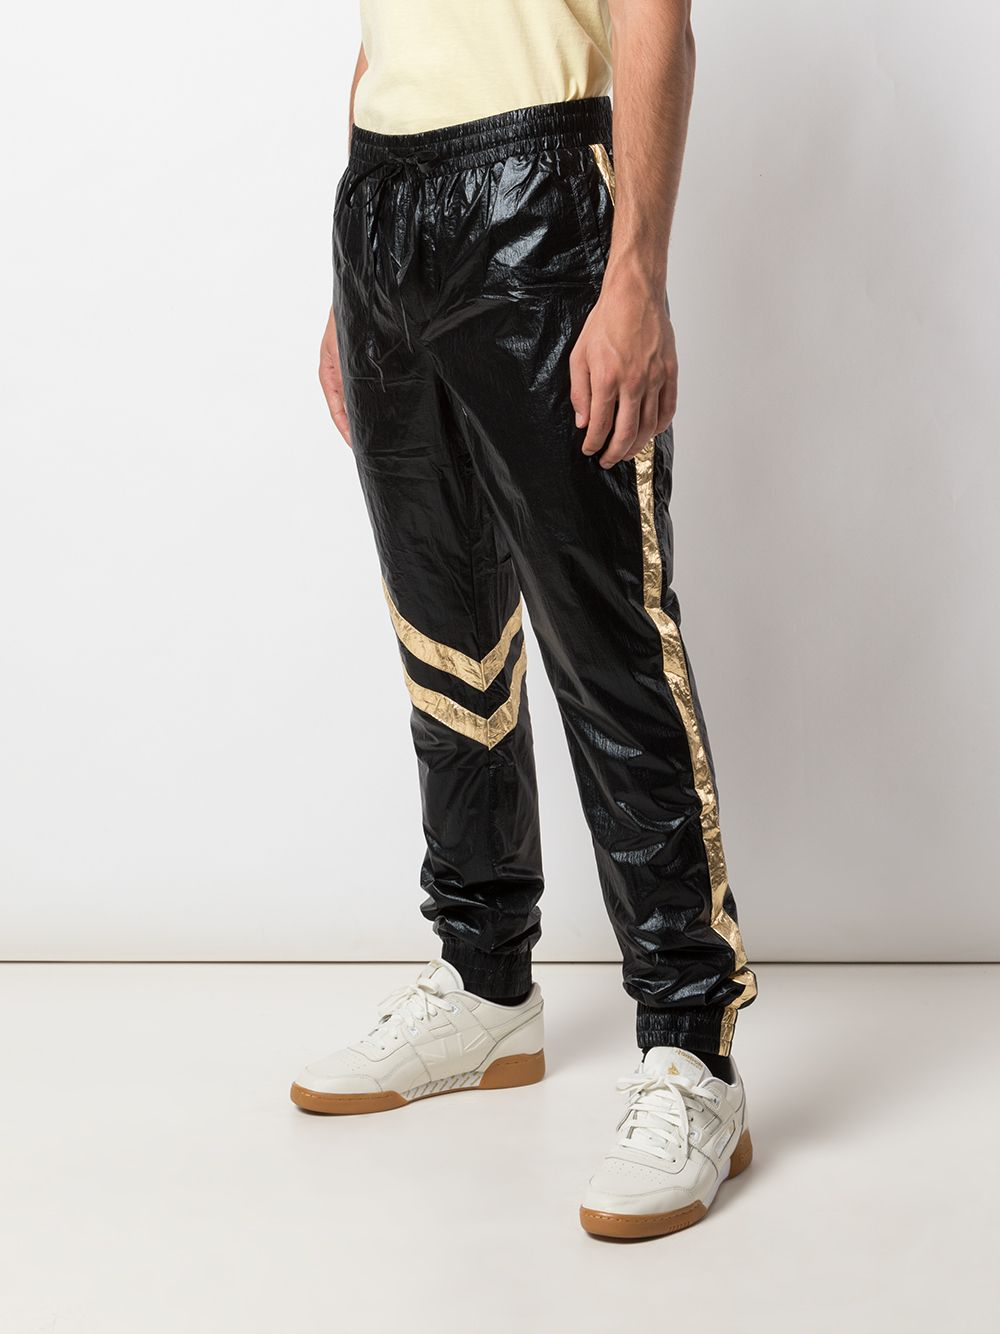 ASTRO PANTS (METAL BLACK/GOLD)